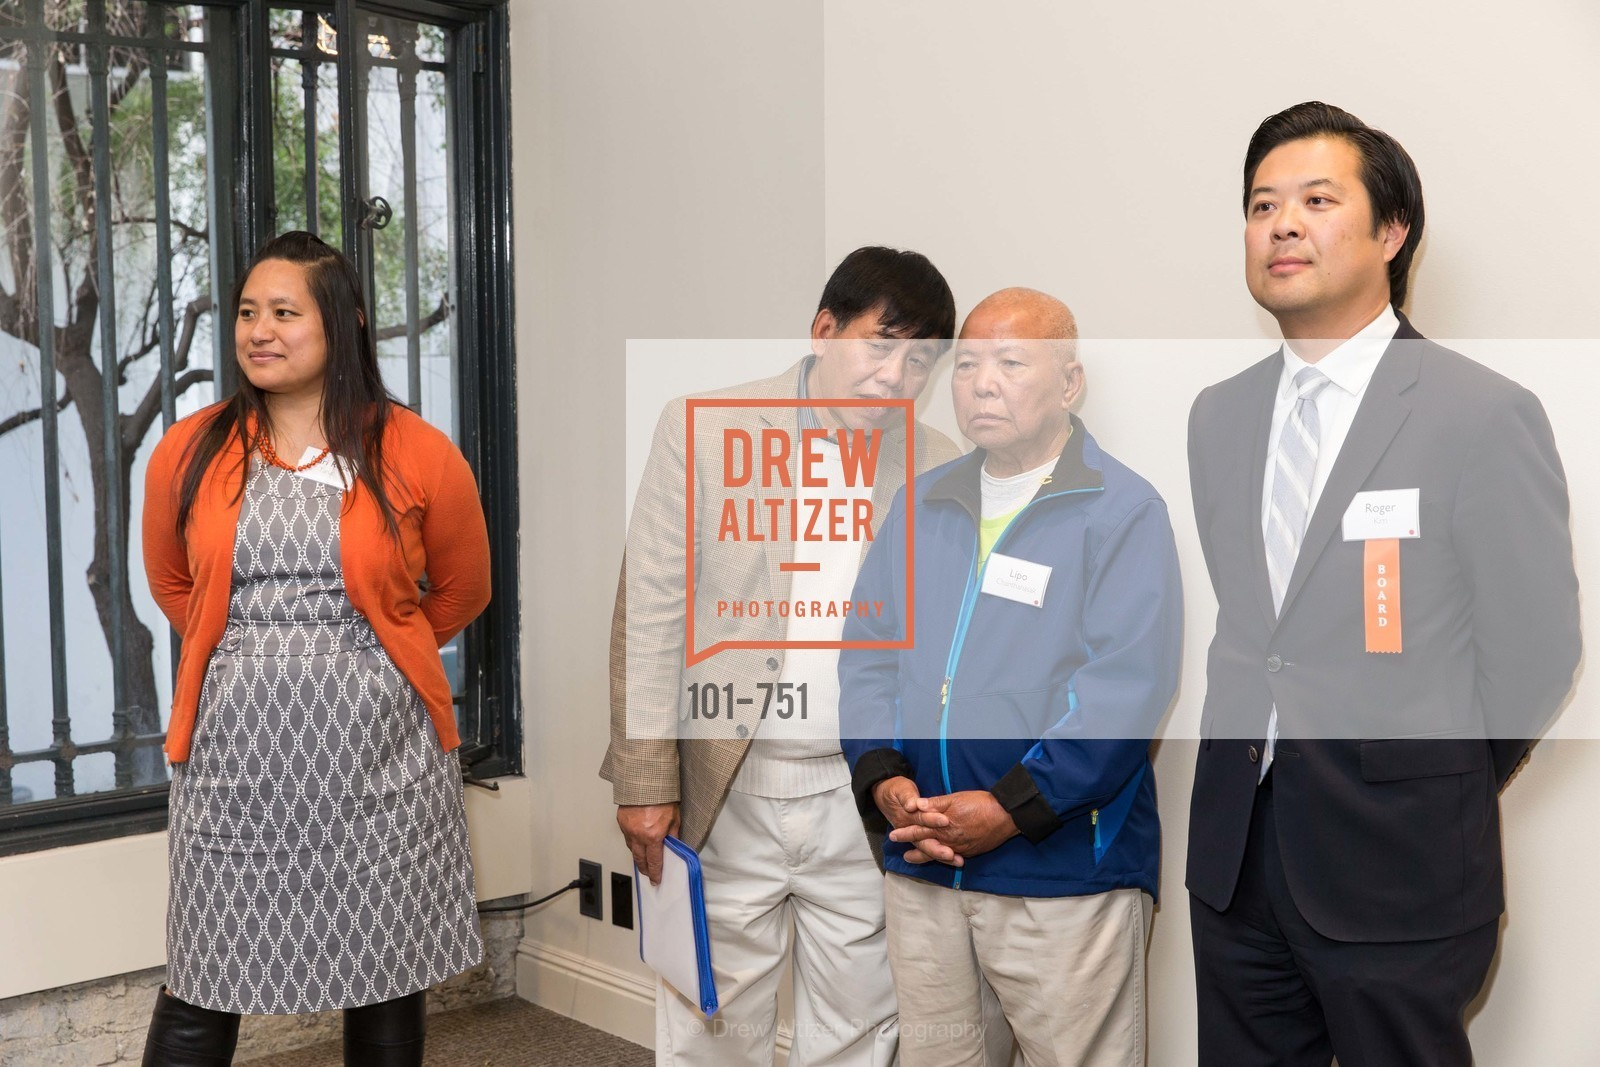 Mari Rose Taruc, Torm Nompraseurt, Lipo Chanthanasak, Roger Kim, CENTER FOR ENVIRONMENTAL HEALTH (CEH) 2015 Gala, Bently Reserve, May 28th, 2015,Drew Altizer, Drew Altizer Photography, full-service agency, private events, San Francisco photographer, photographer california